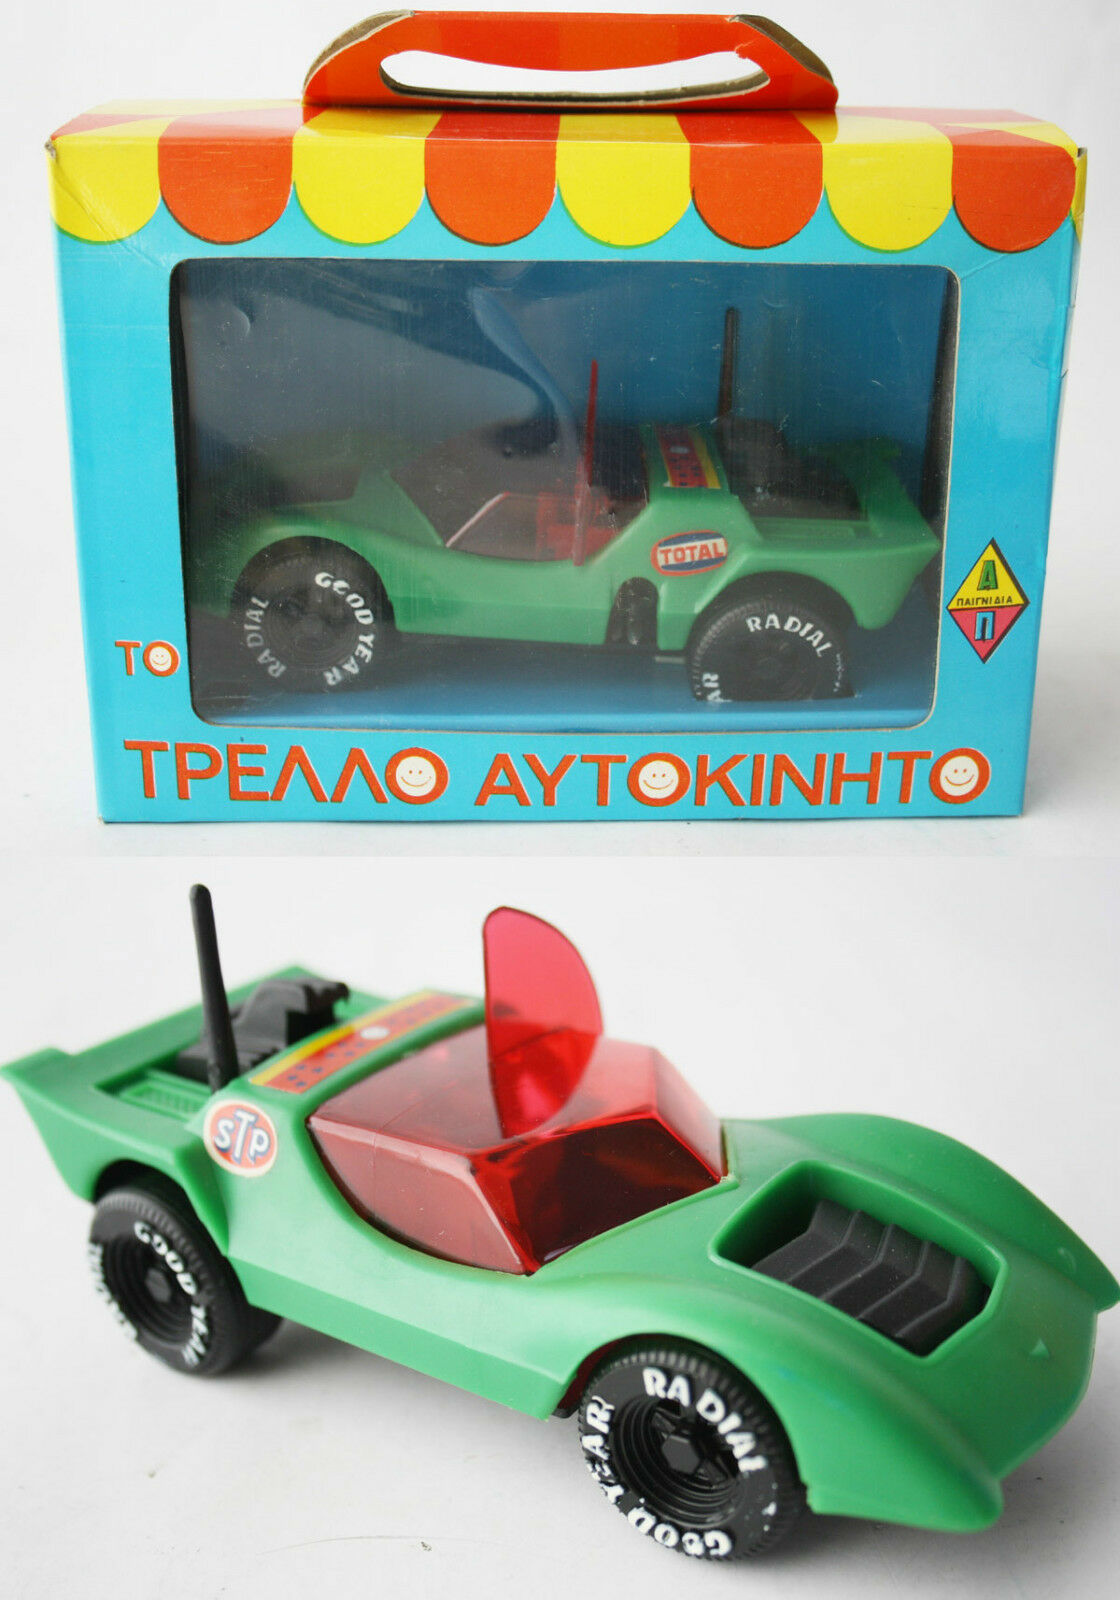 RARE VINTAGE 70'S FUTURISTIC SPACE CAR WIND UP PAPPAS BROS GREECE GREEK NEW